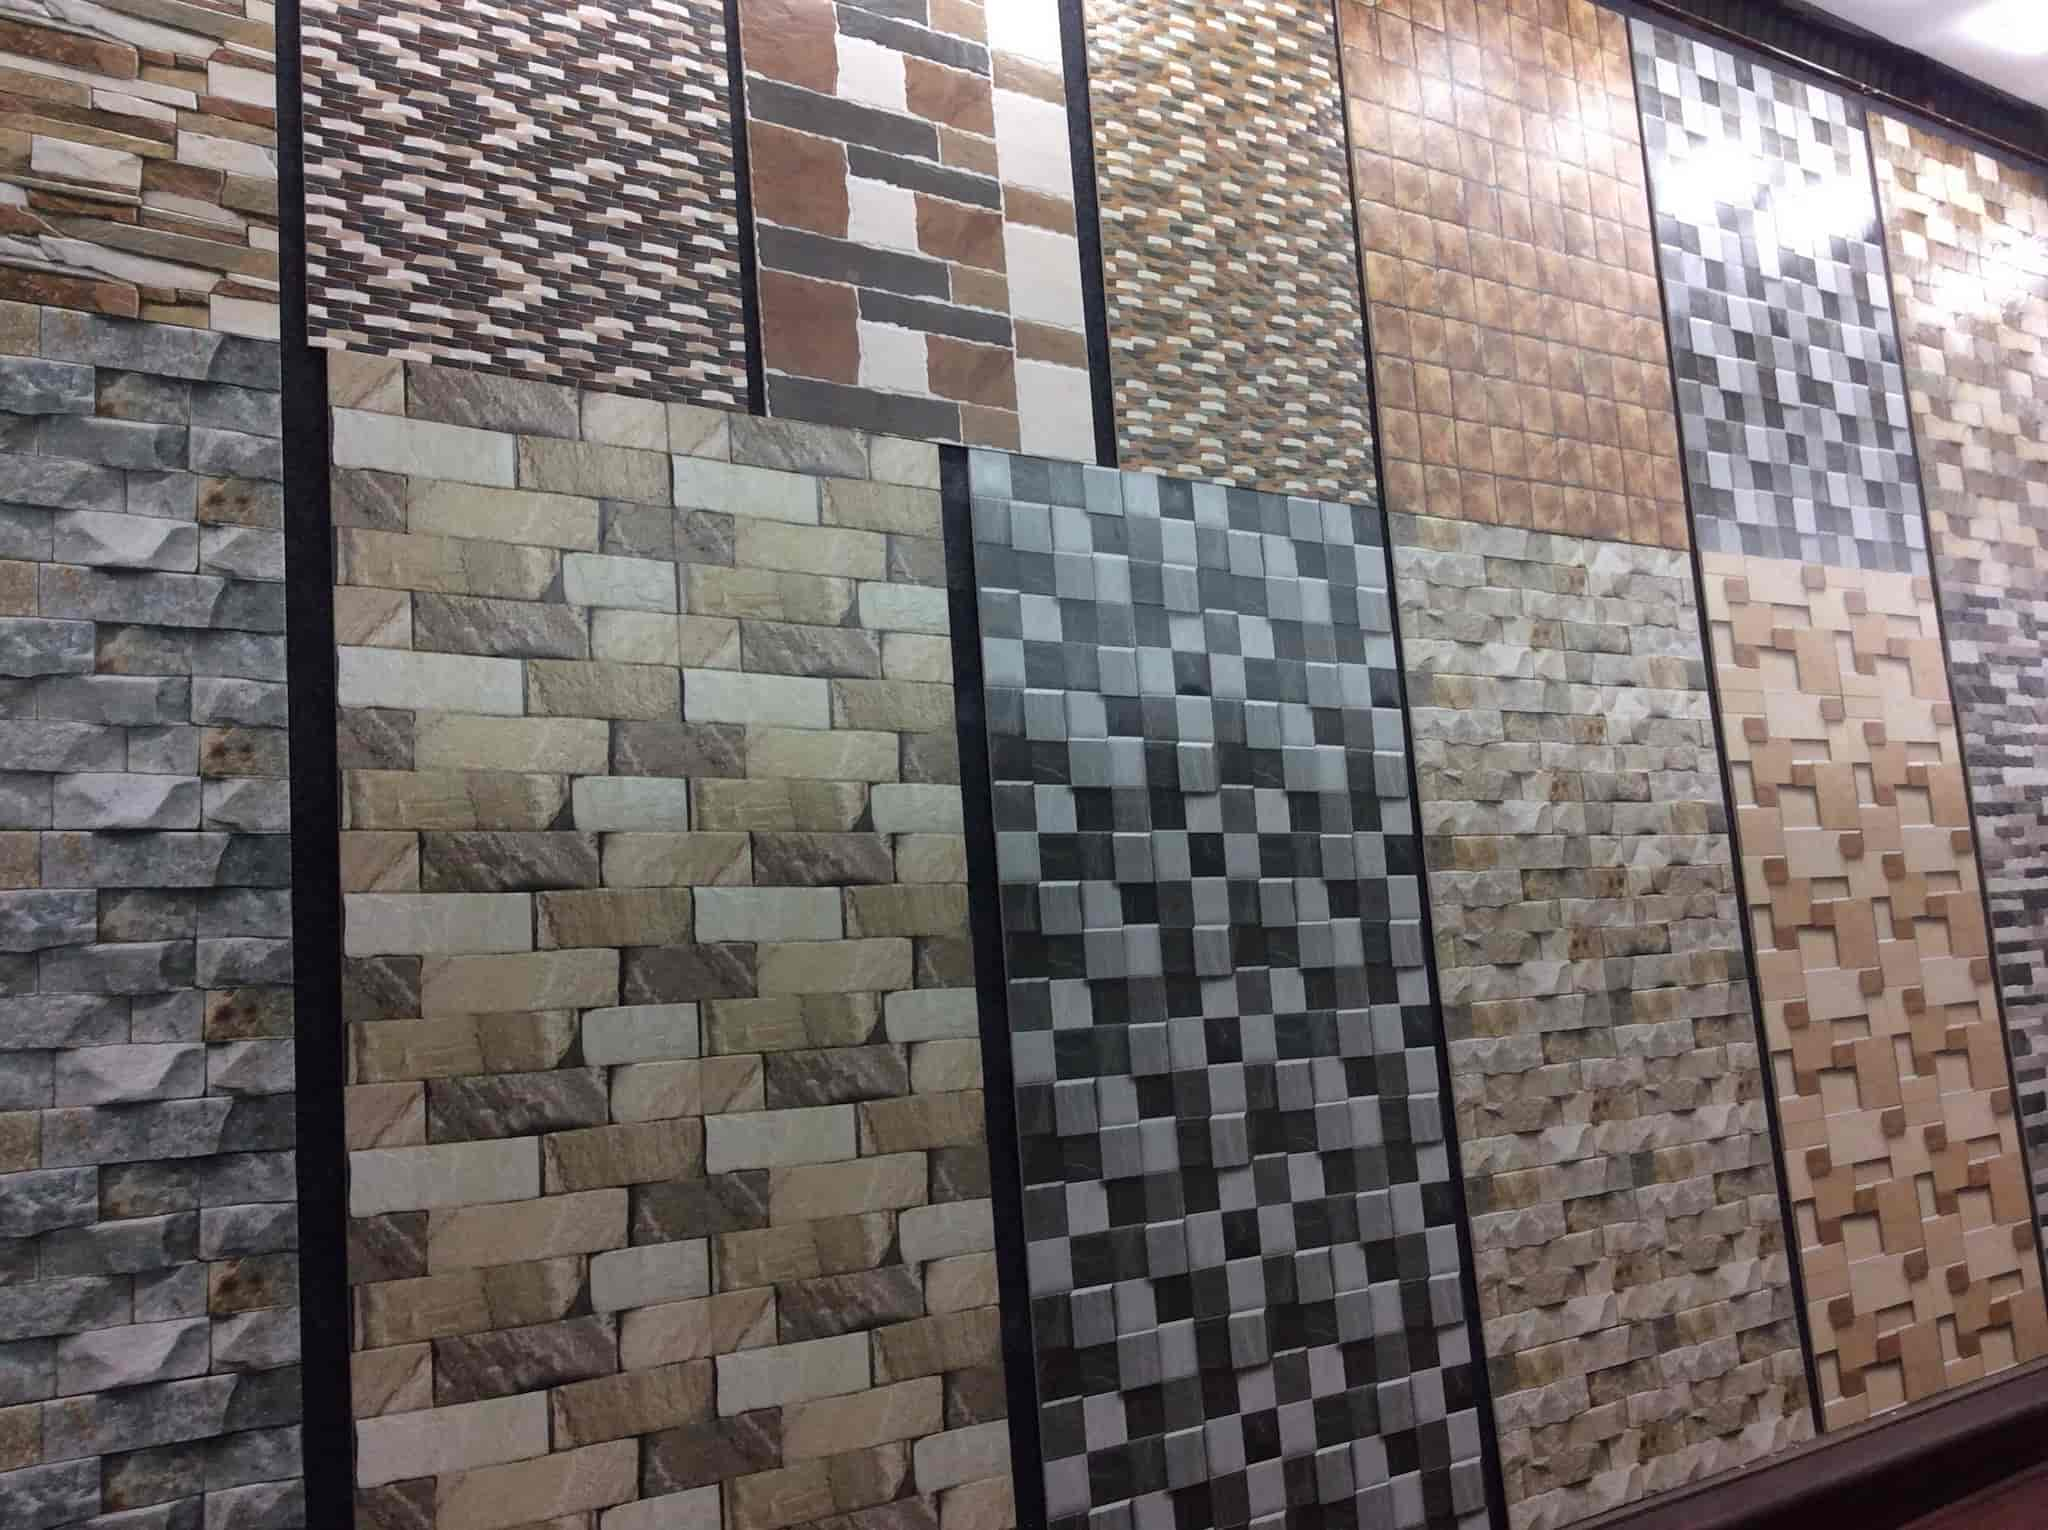 new quality tiles and sanitary ware nandyal check post new quality tiles sanitary ware flooring tile dealers in kurnool justdial